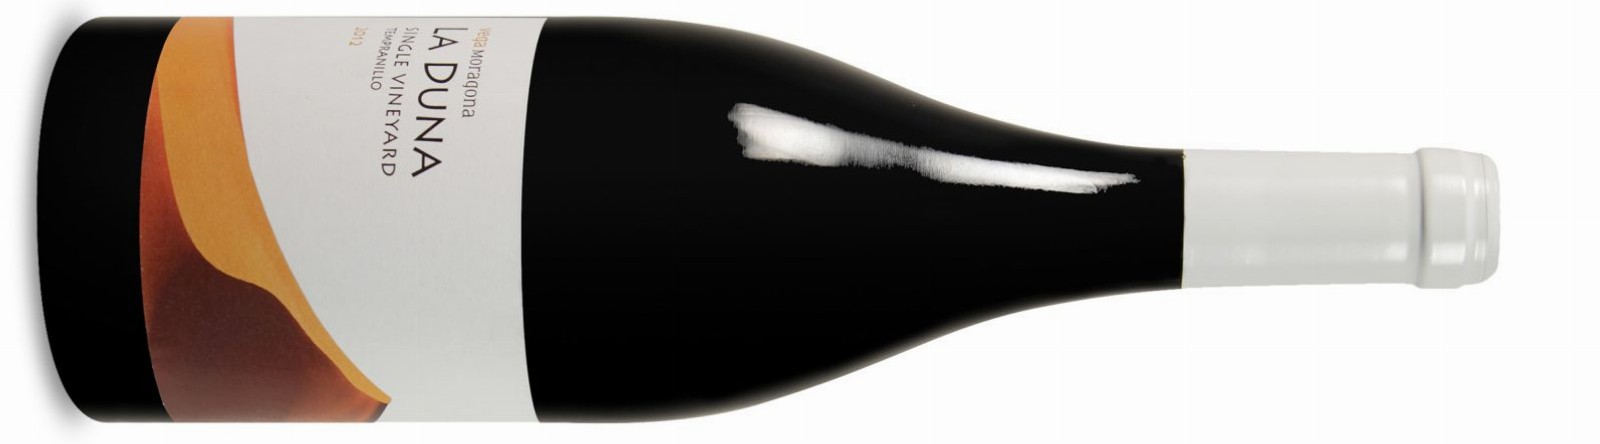 La Duna Single Vineyard Tempranillo 2012